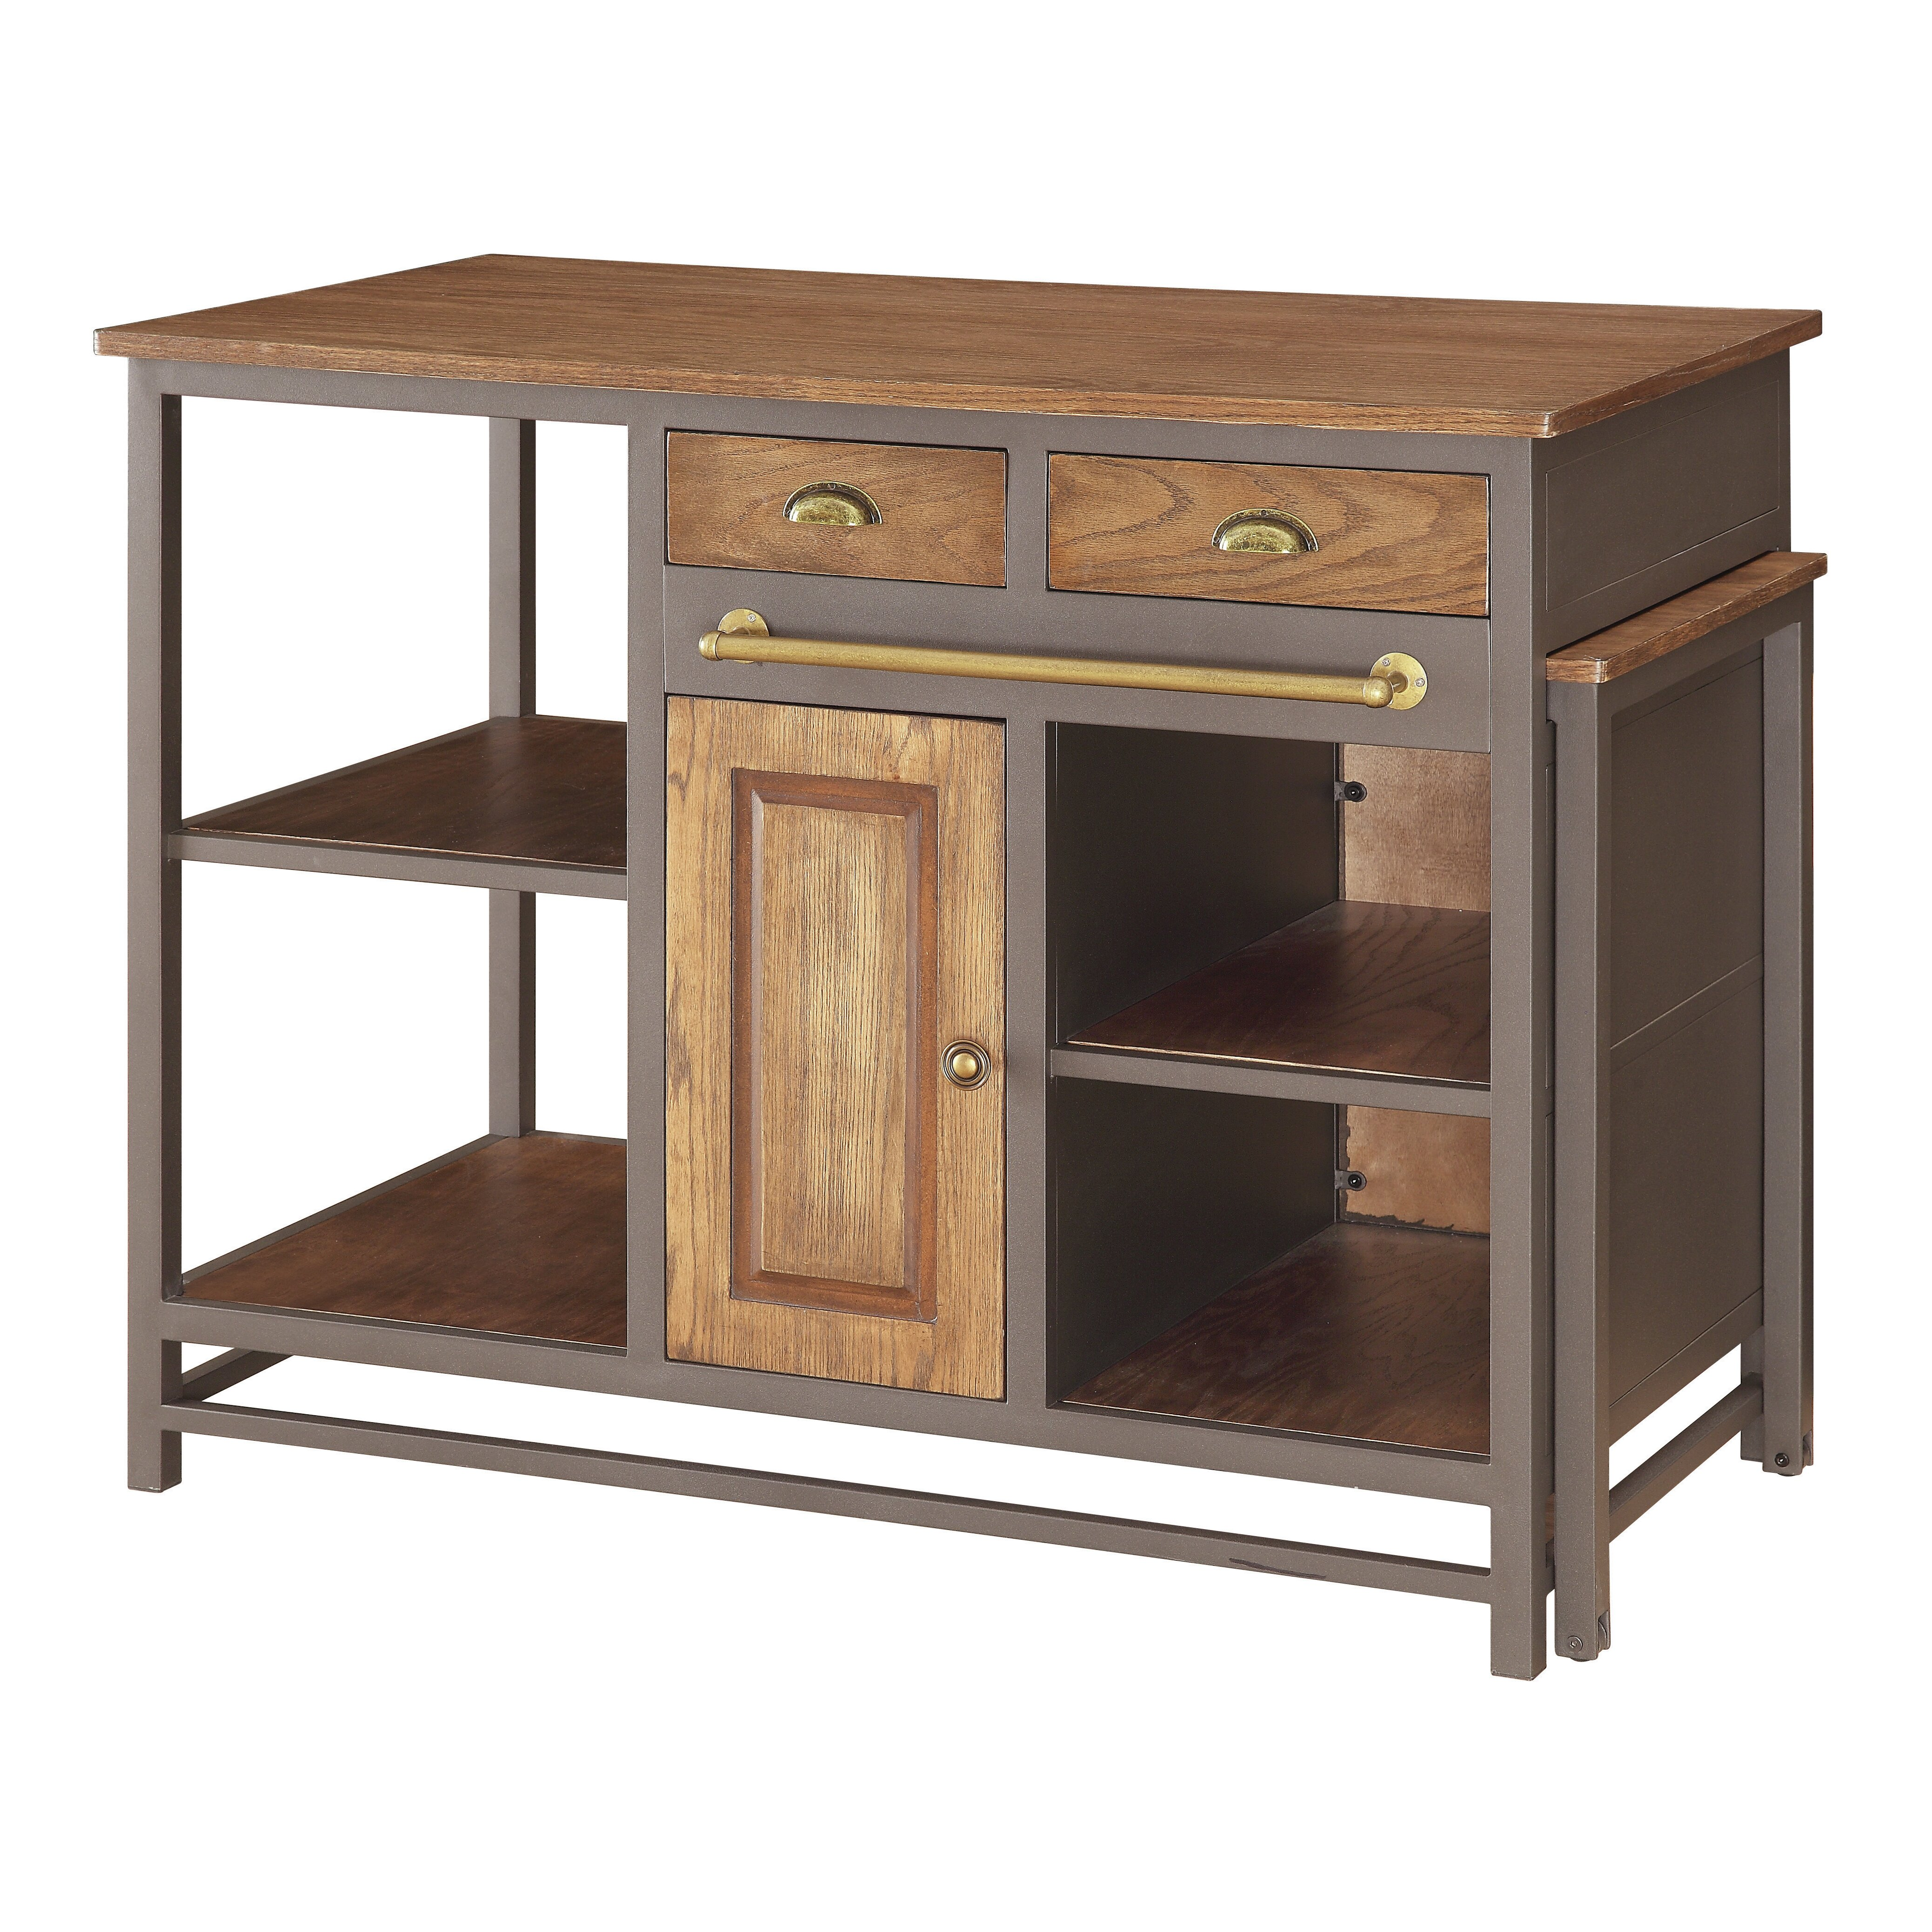 Kitchen Wood Top: Kitchen Island With Wood Top